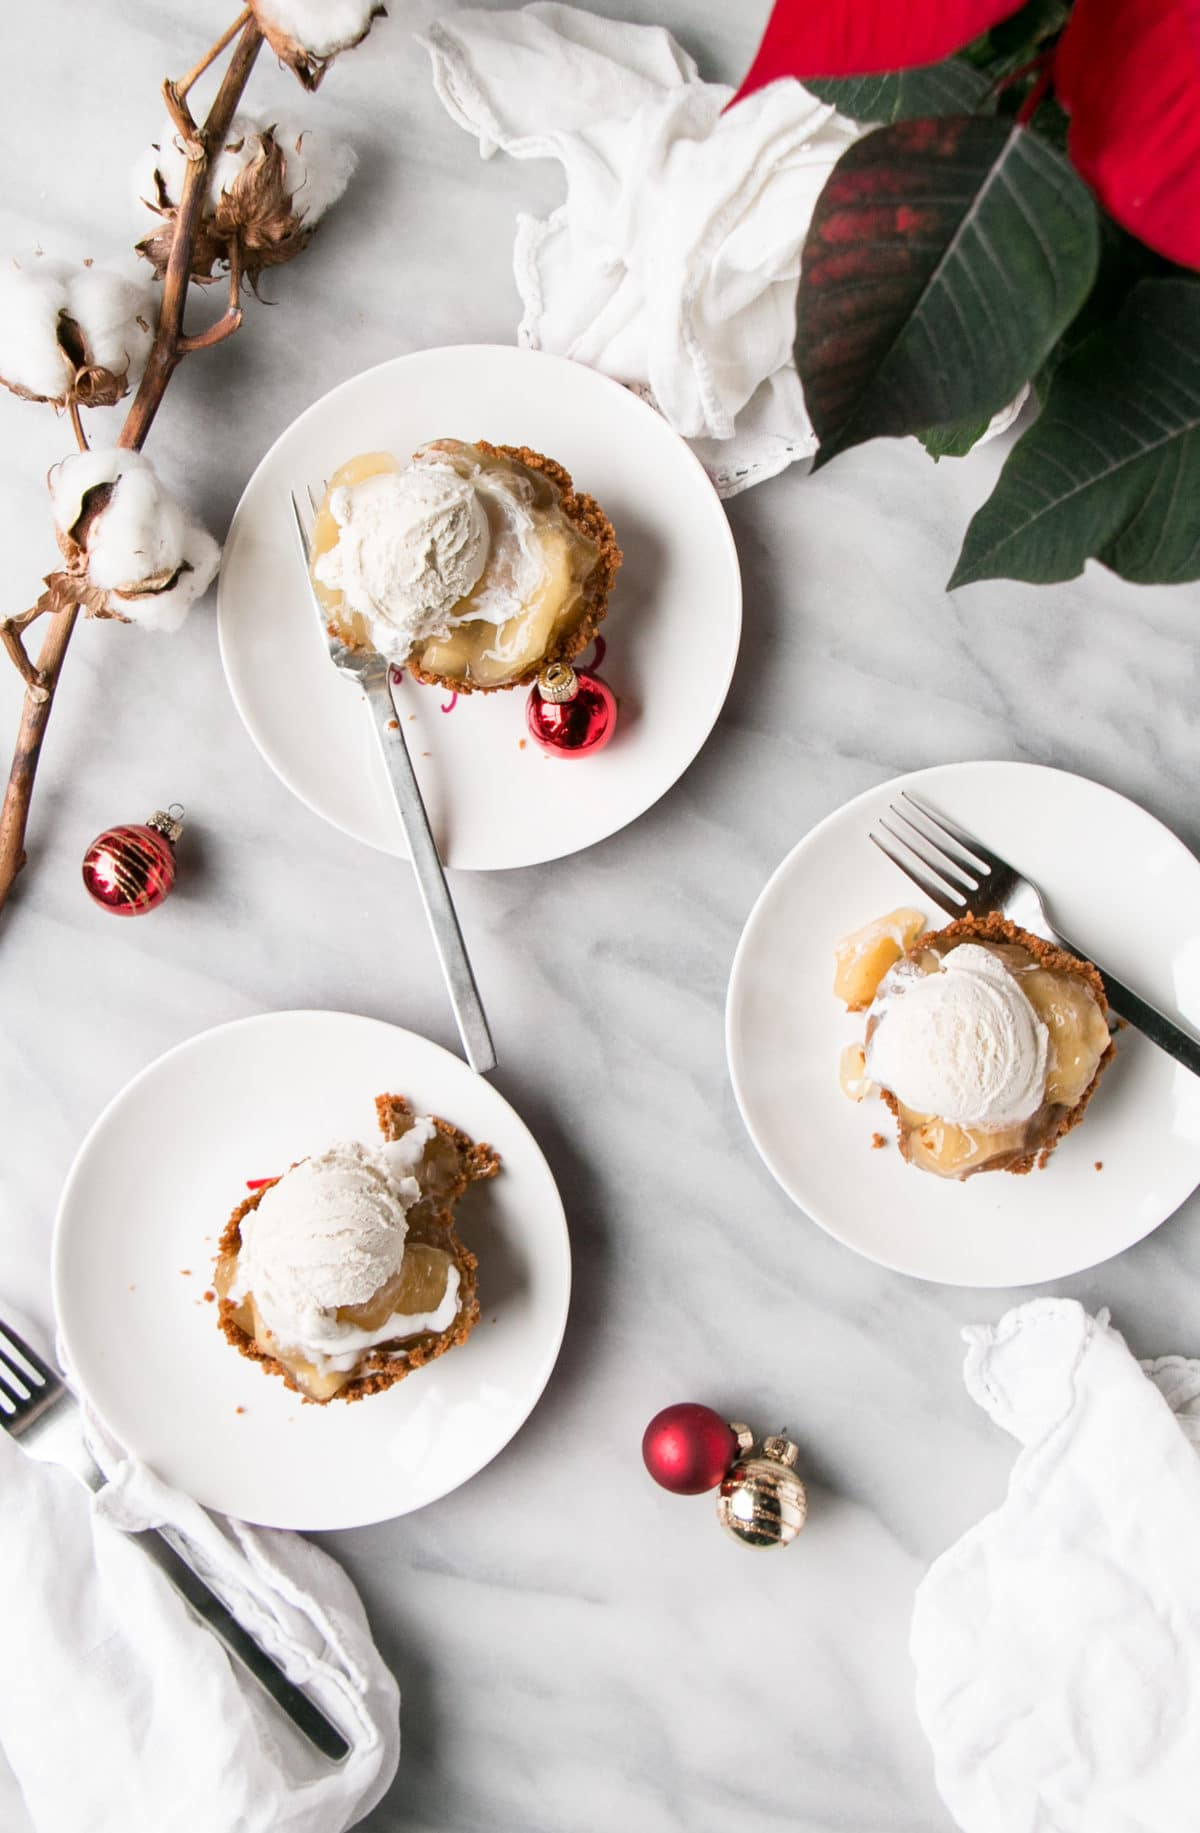 Mini Apple Pies with ice cream and holiday decor